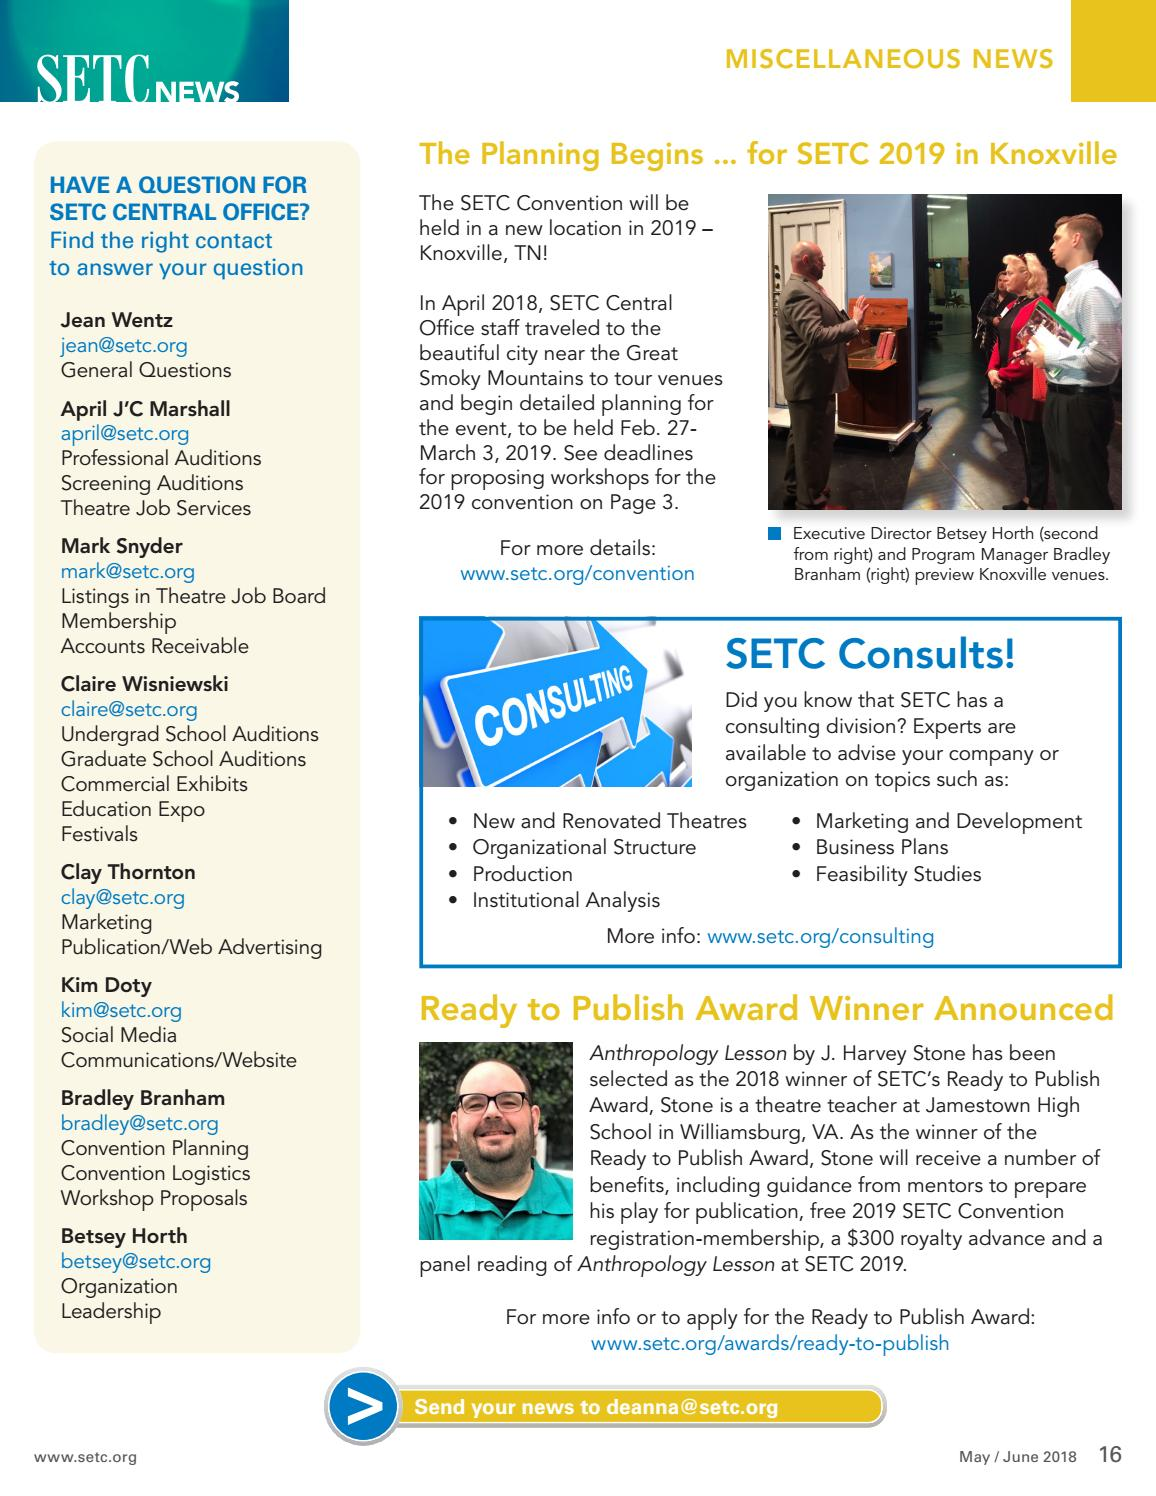 SETC News May/June 2018 by Southeastern Theatre Conference